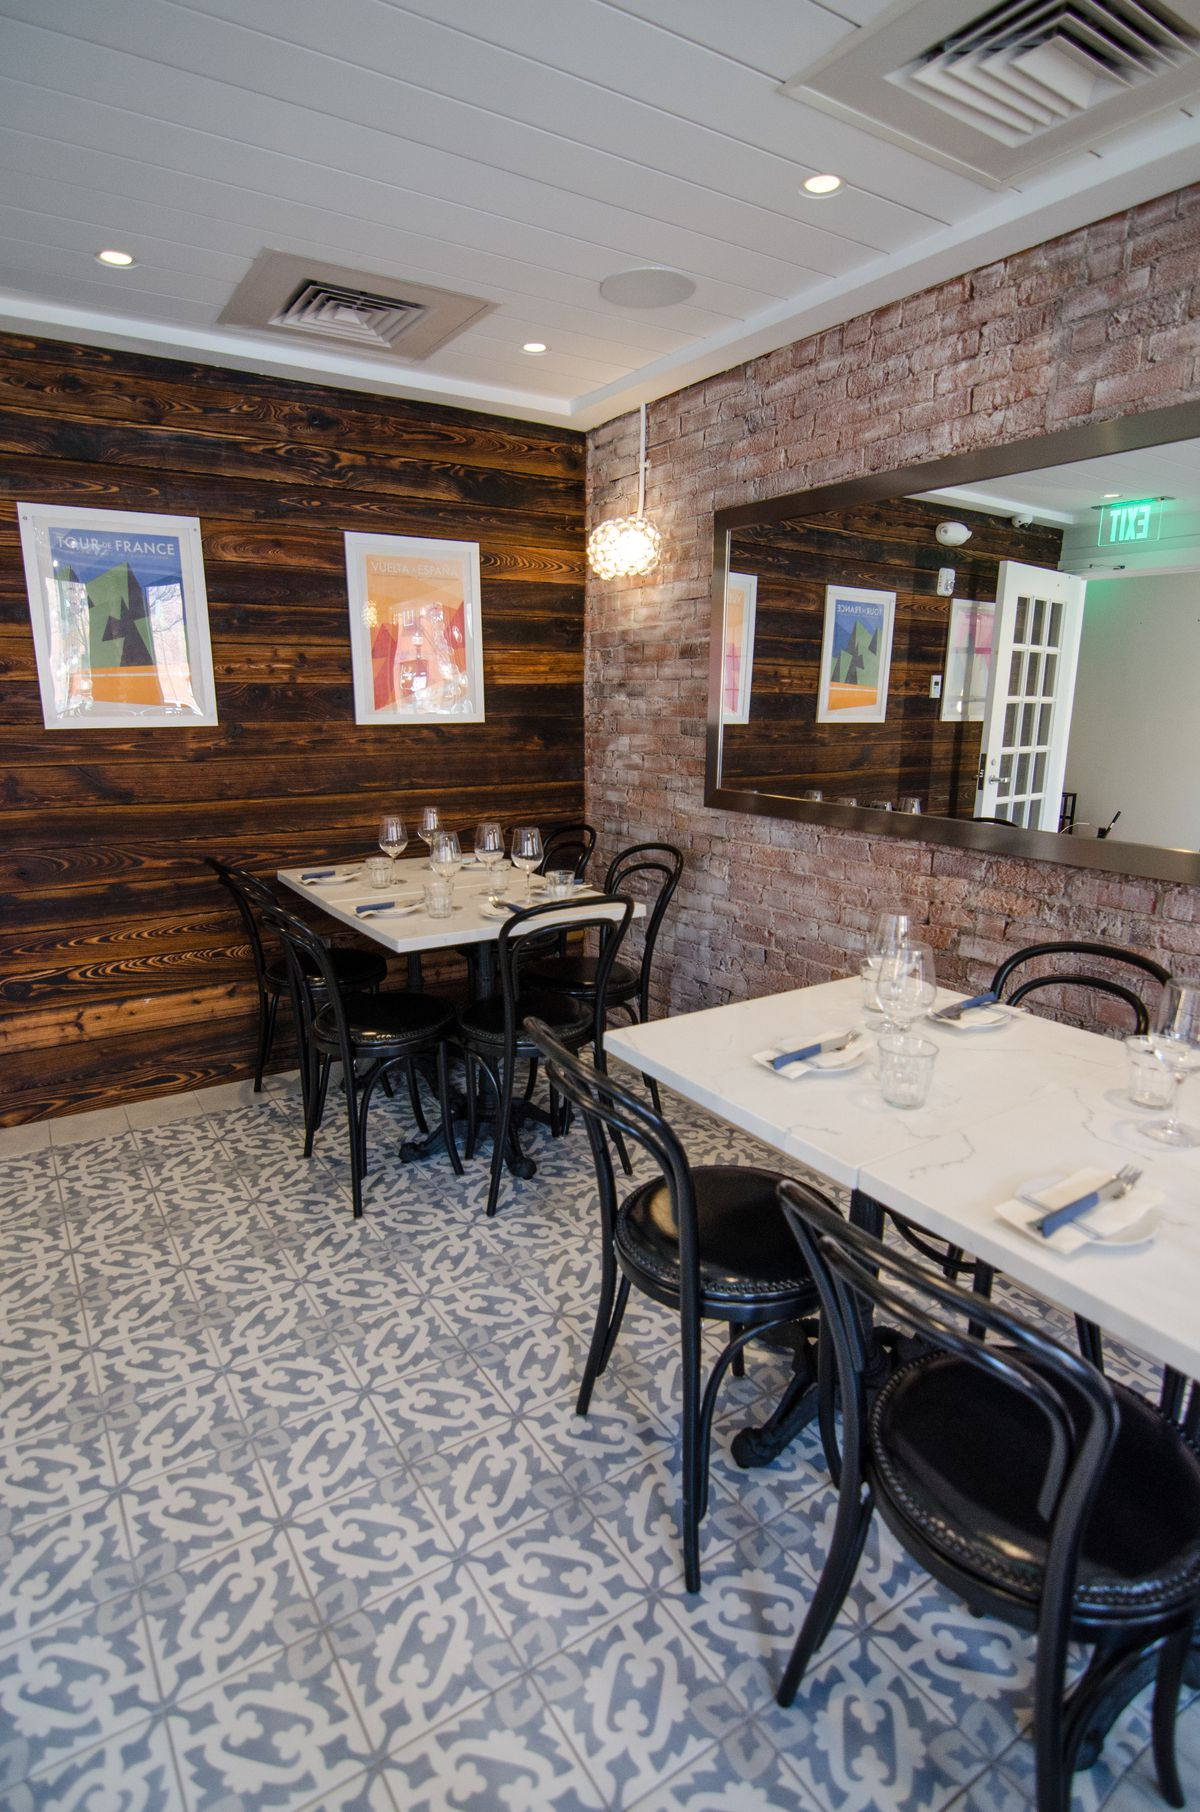 Small dining room at a restaurant with Spanish-style tiled floor, one white-washed brick wall, and one dark wood wall with a couple pieces of artwork hanging on it.